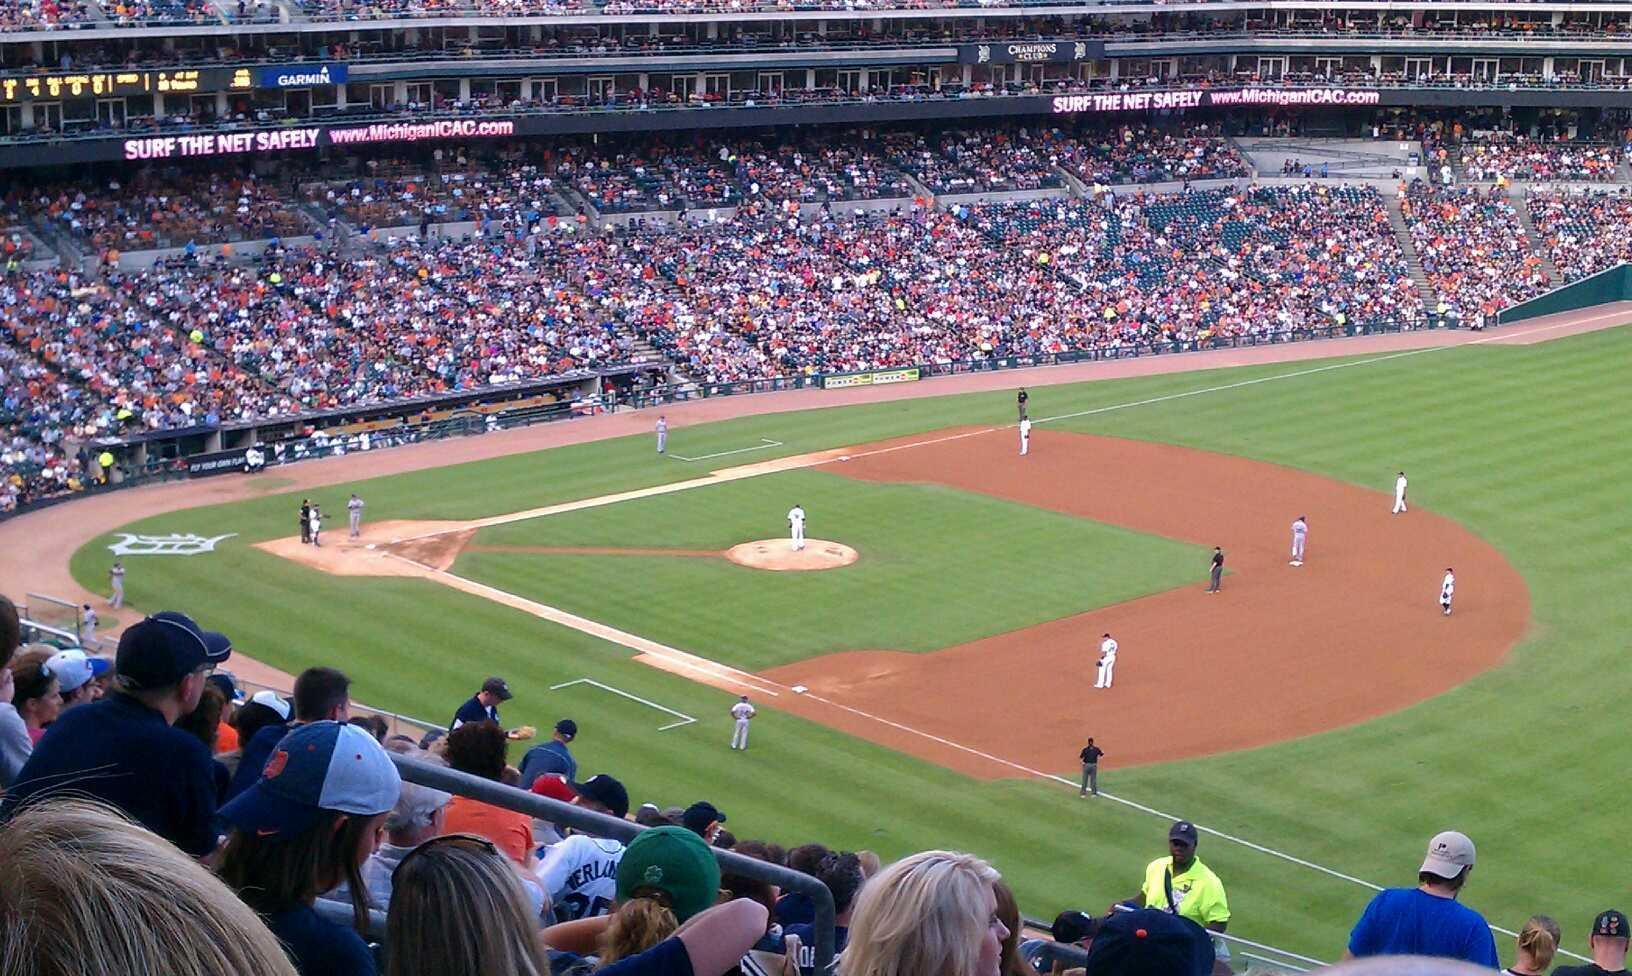 Comerica Park Section 215 Row 19 Seat 9